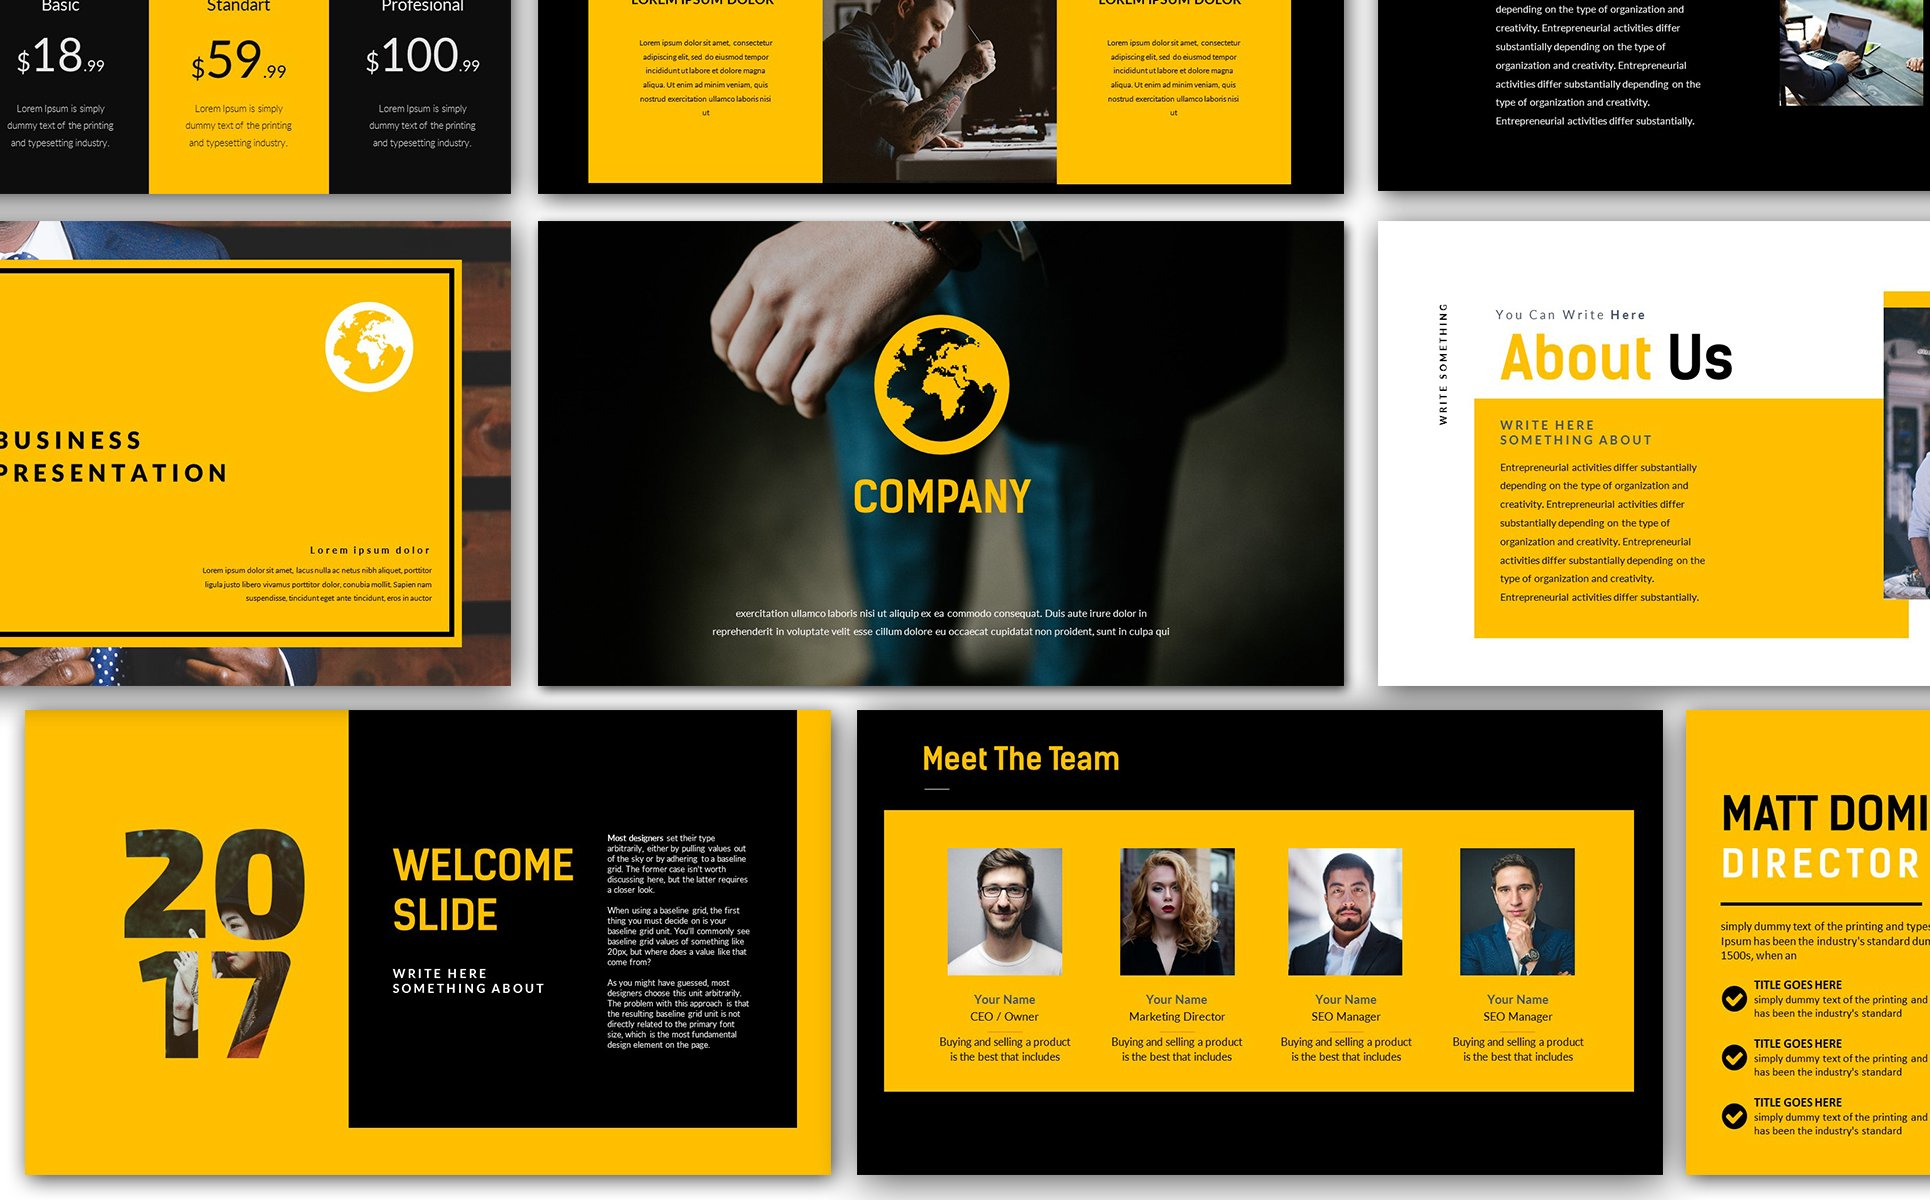 Yellow company business presentation powerpoint template 66837 yellow company business presentation powerpoint template big screenshot toneelgroepblik Choice Image